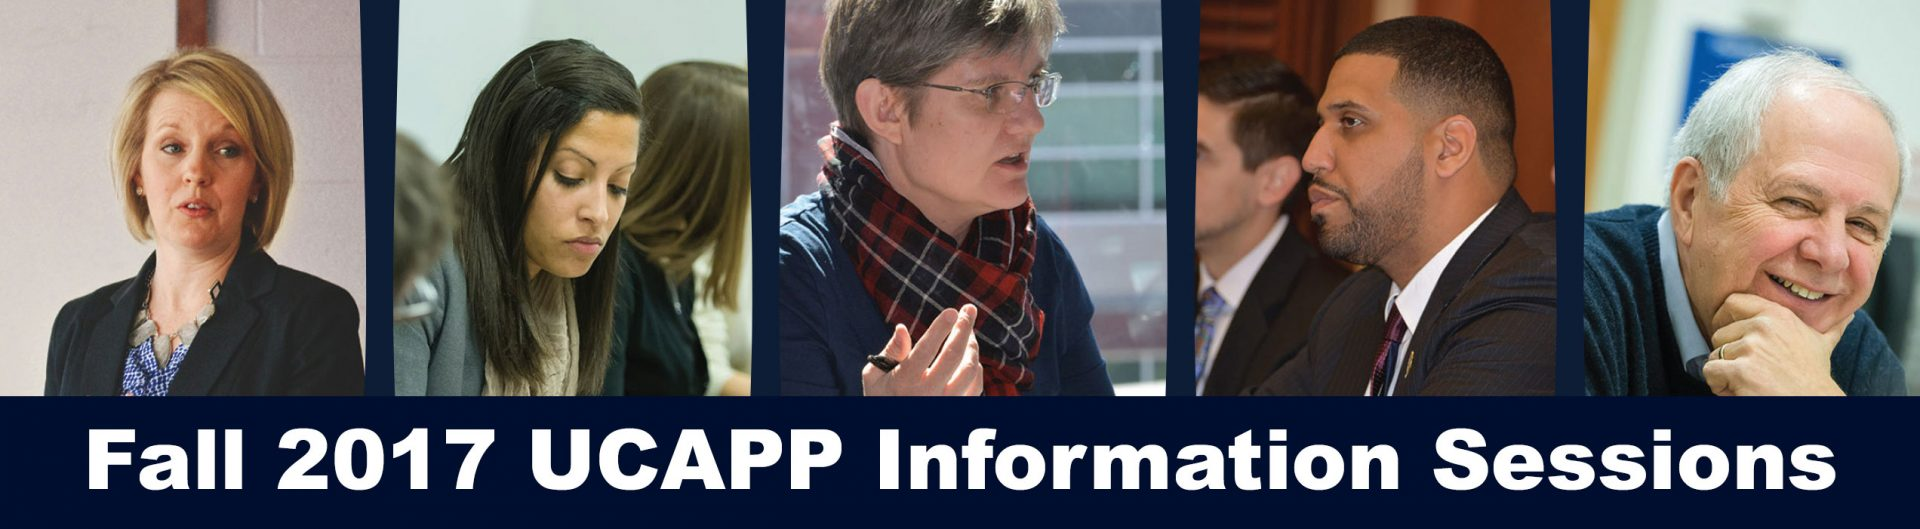 UCAPP Information Sessions, Fall 2017